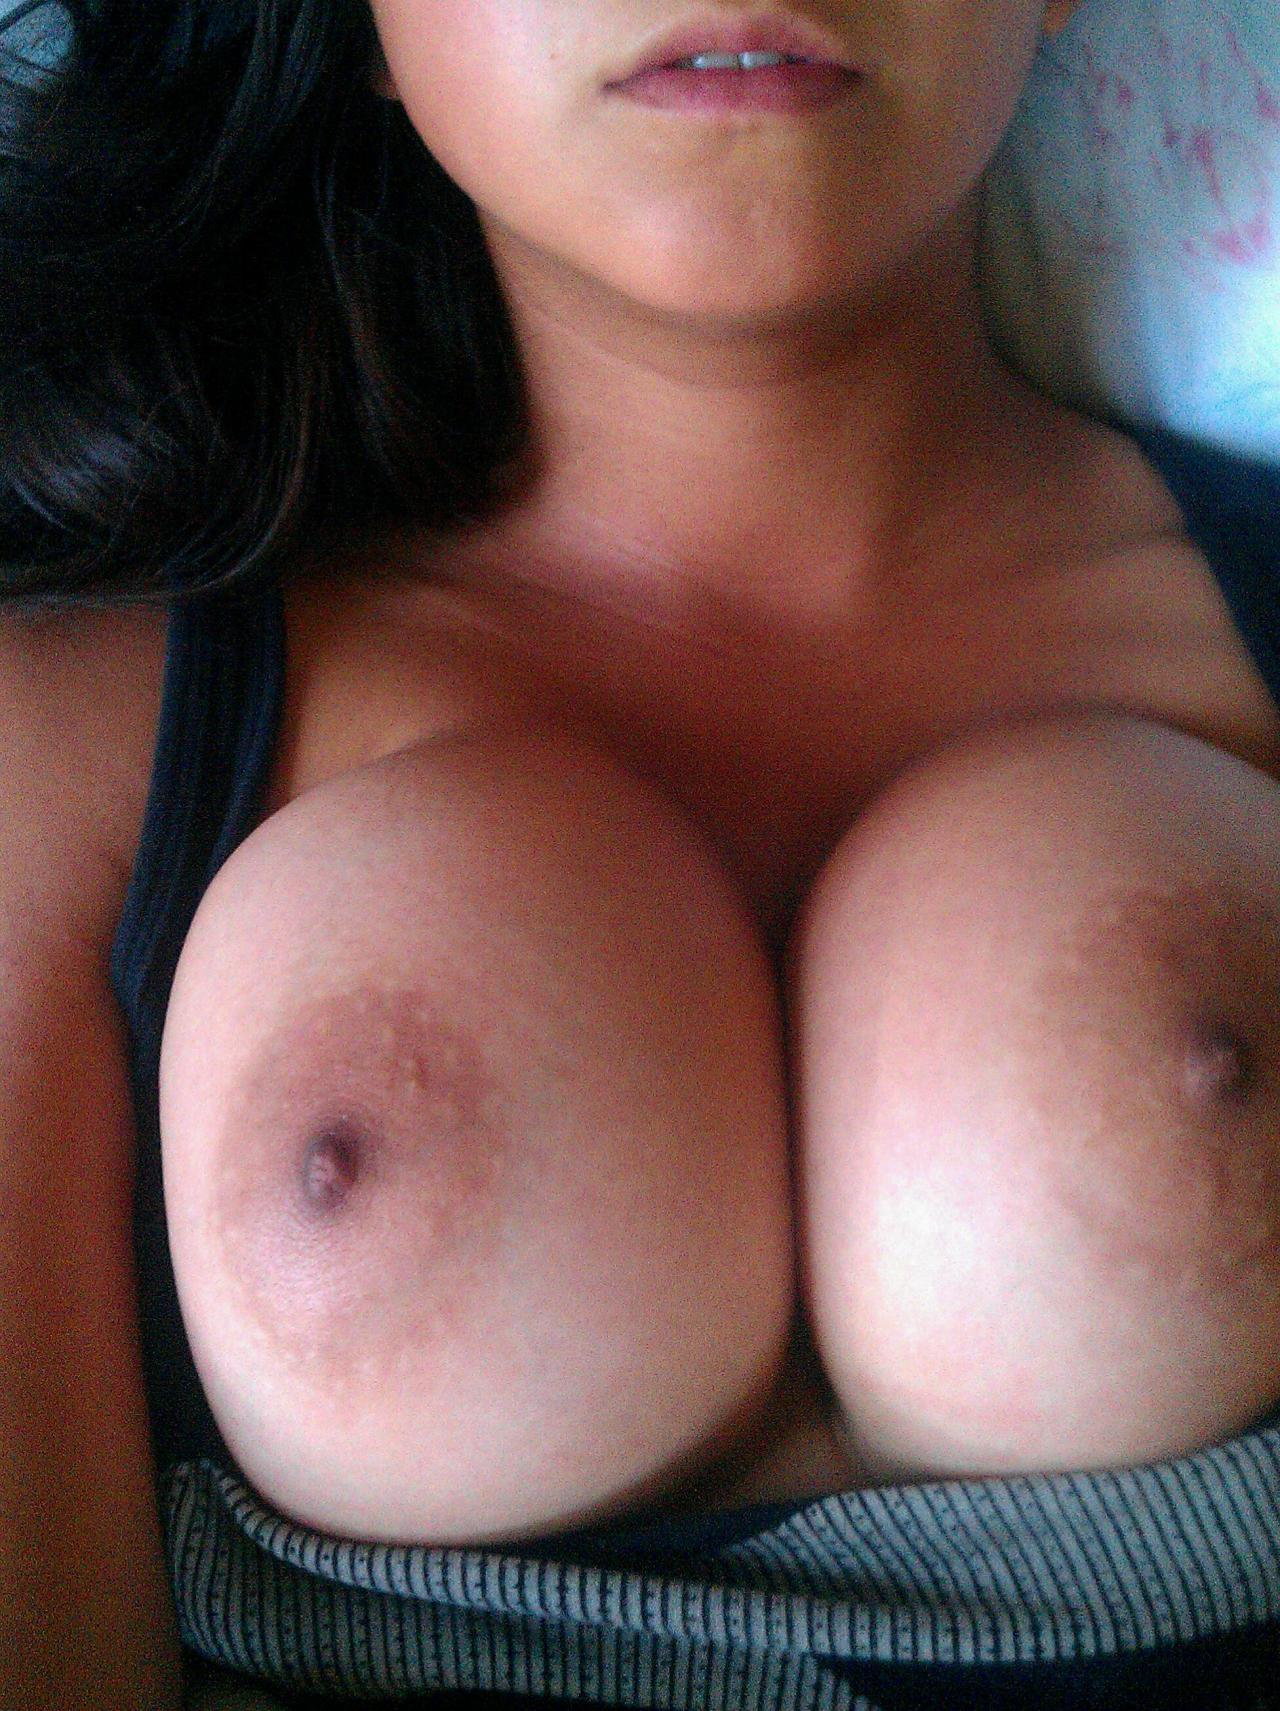 boobworld:  theboobsareback: pretty tits  I like his mouth